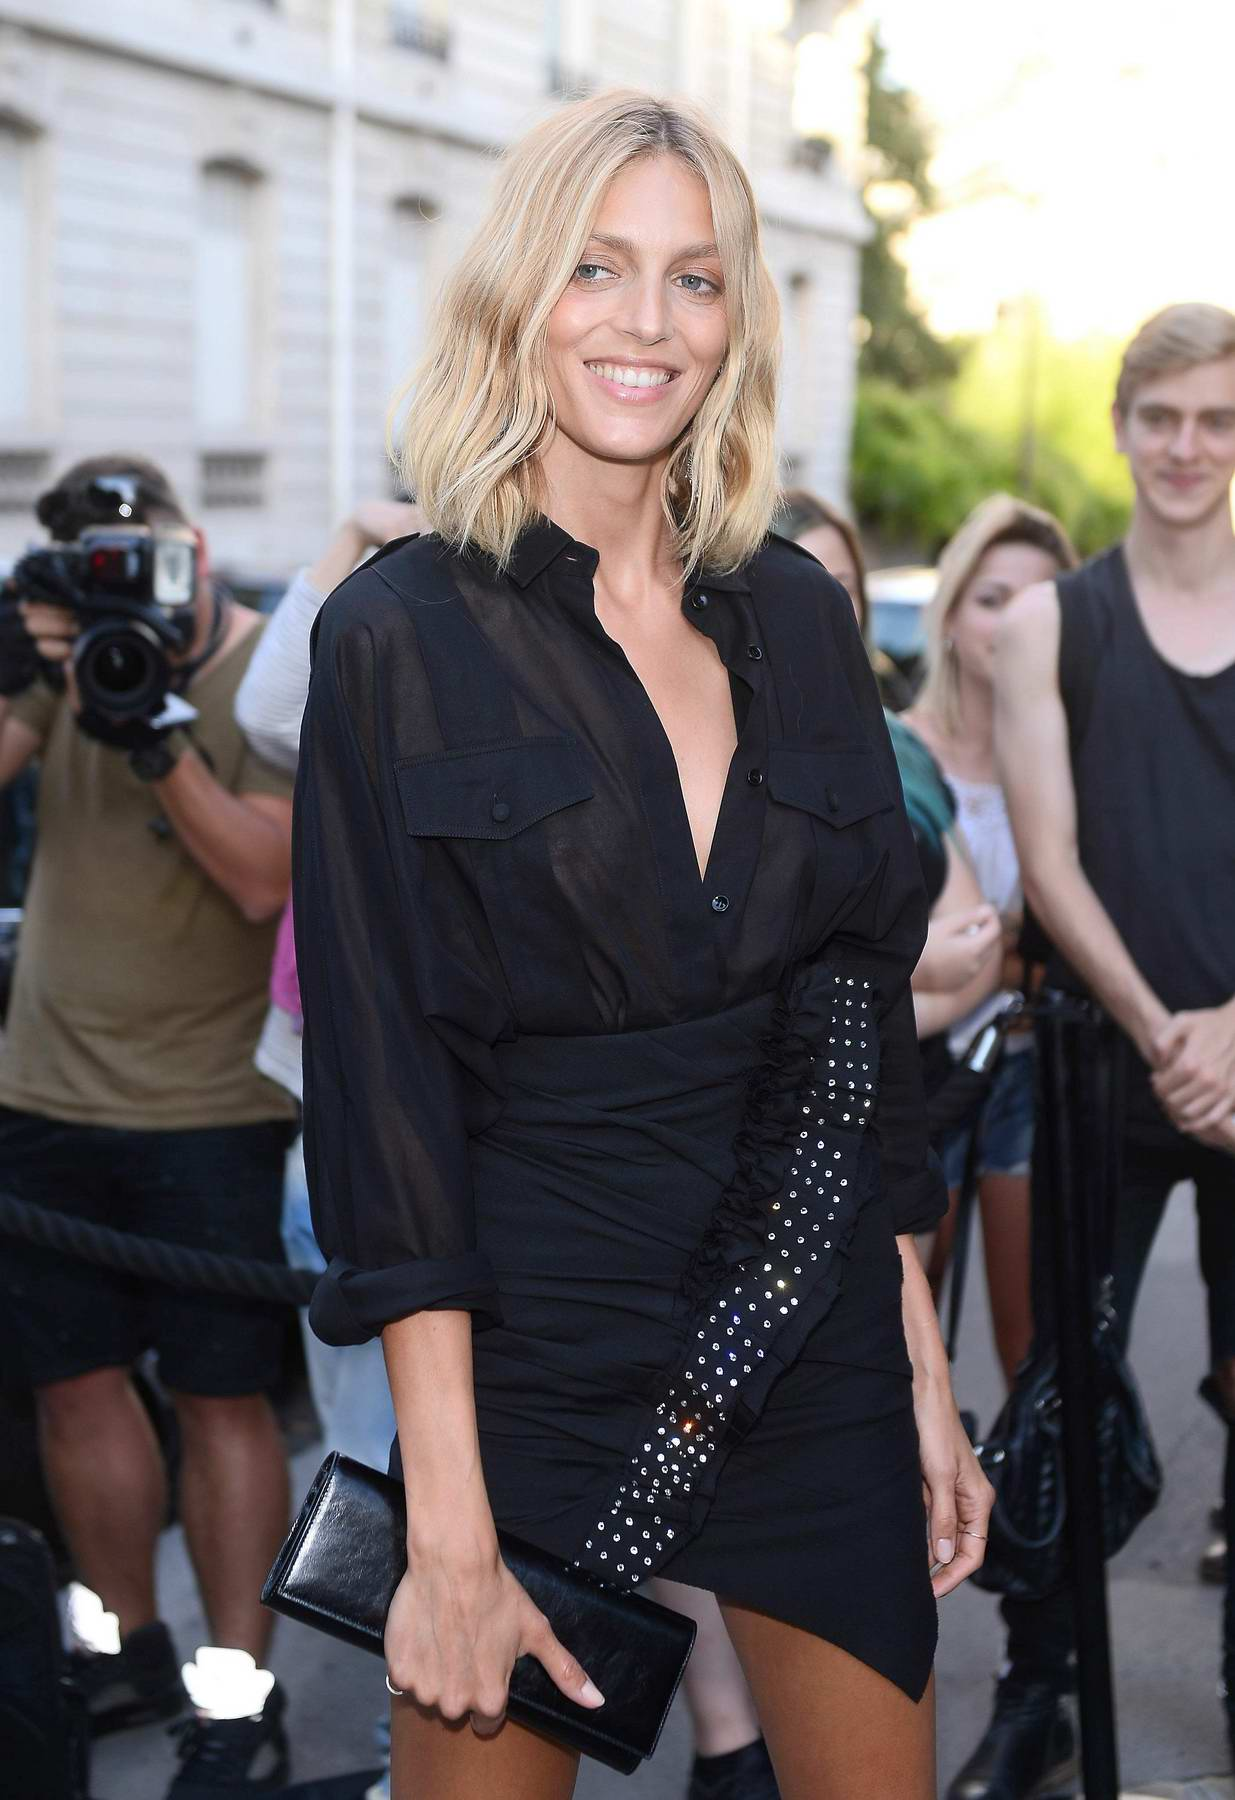 Anja Rubik at Vogue Party at Musee Galliera at Paris Fashion Week in Paris, France